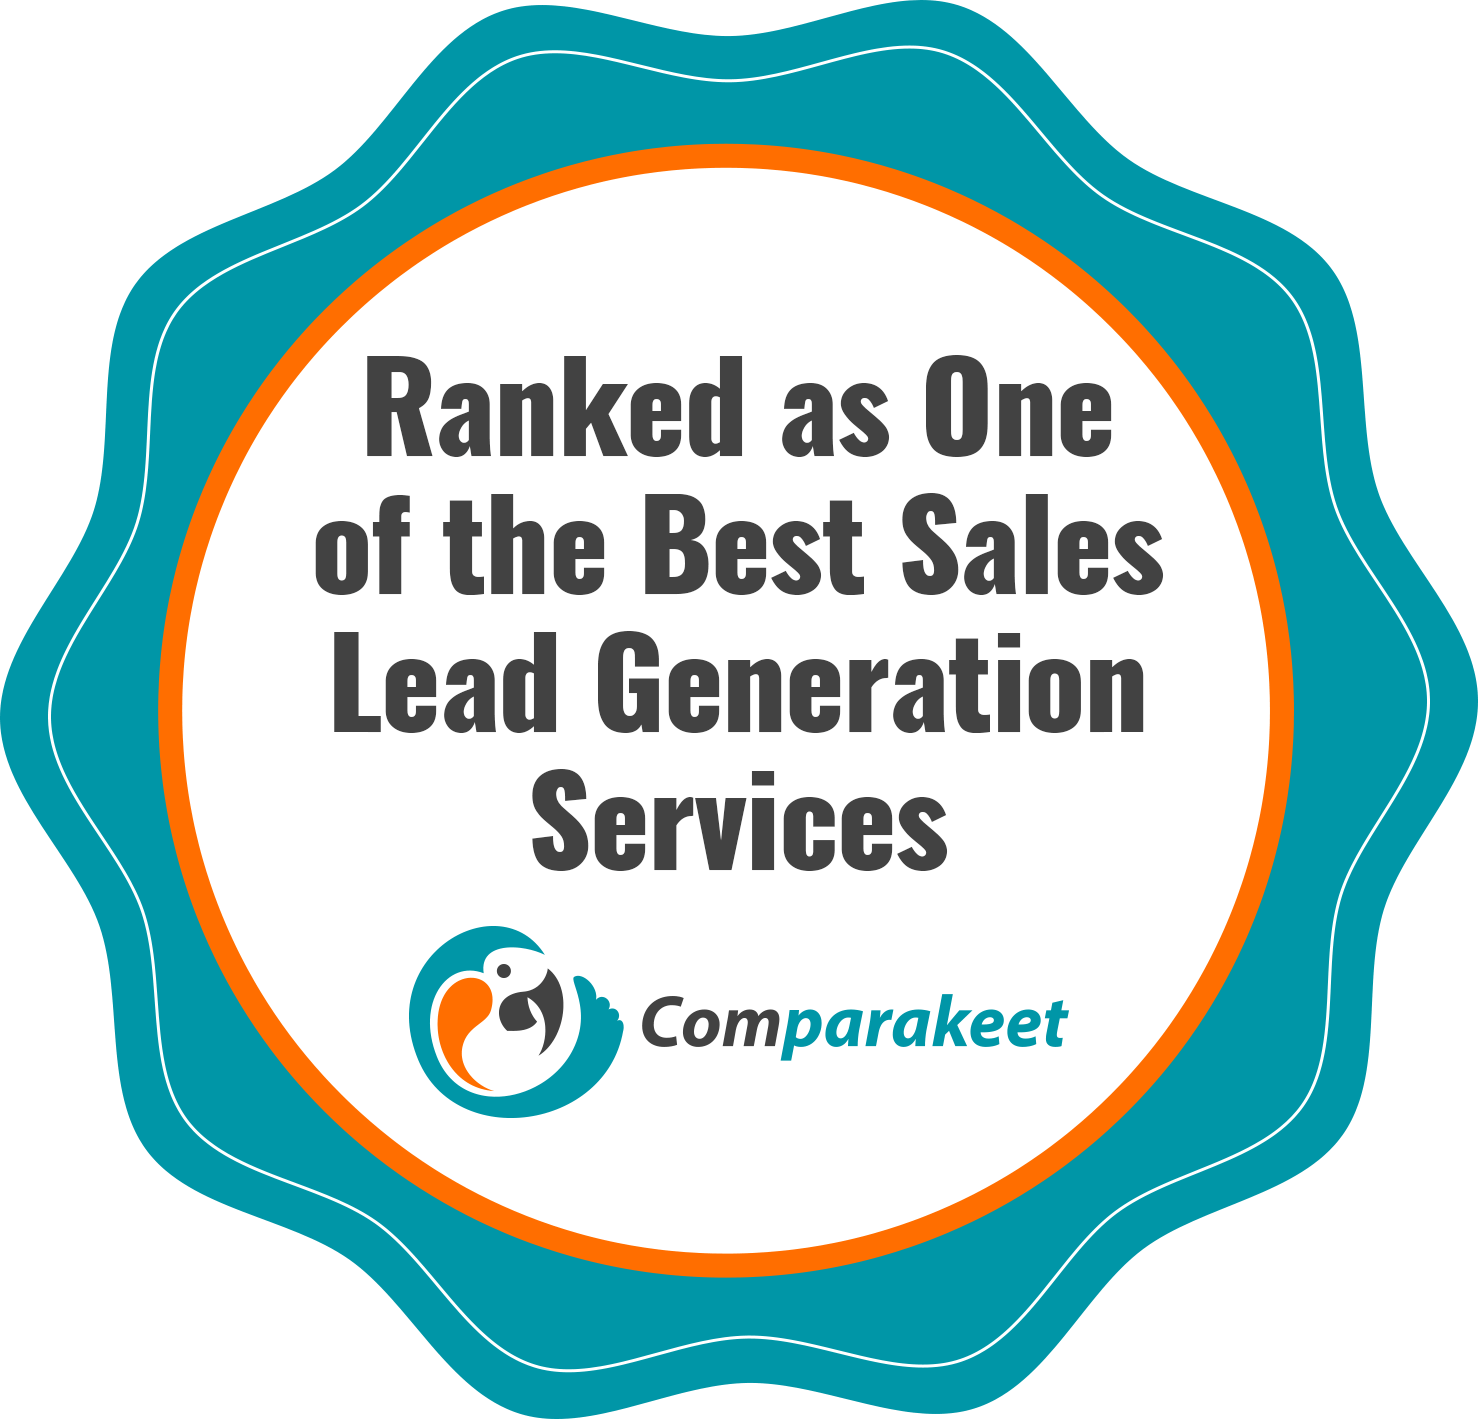 Ranked as One of the Best Sales Lead Generation Services